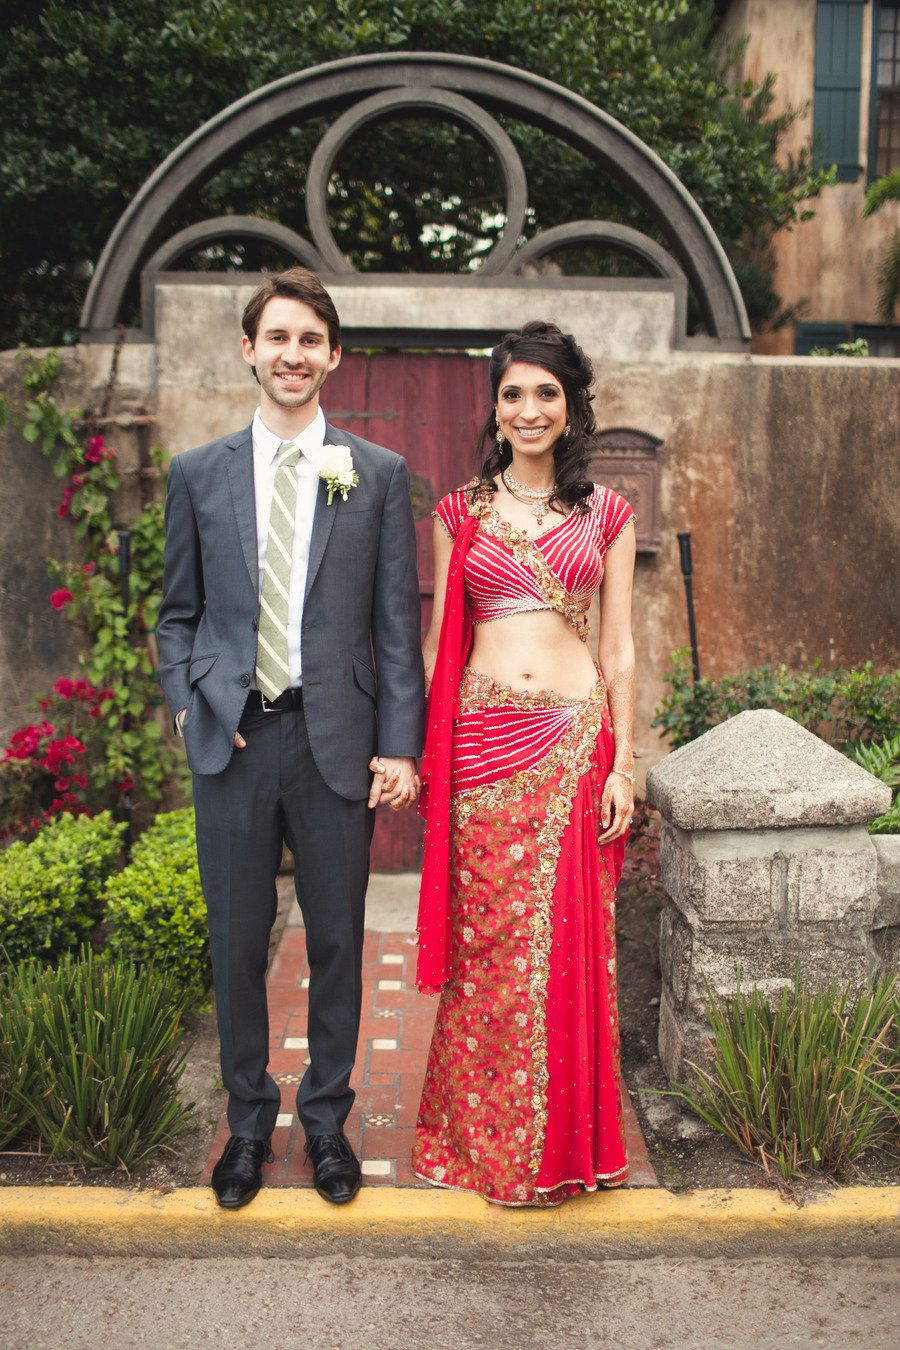 St. Augustine Wedding at The Oldest House by Ben Sasso | Pinterest ...